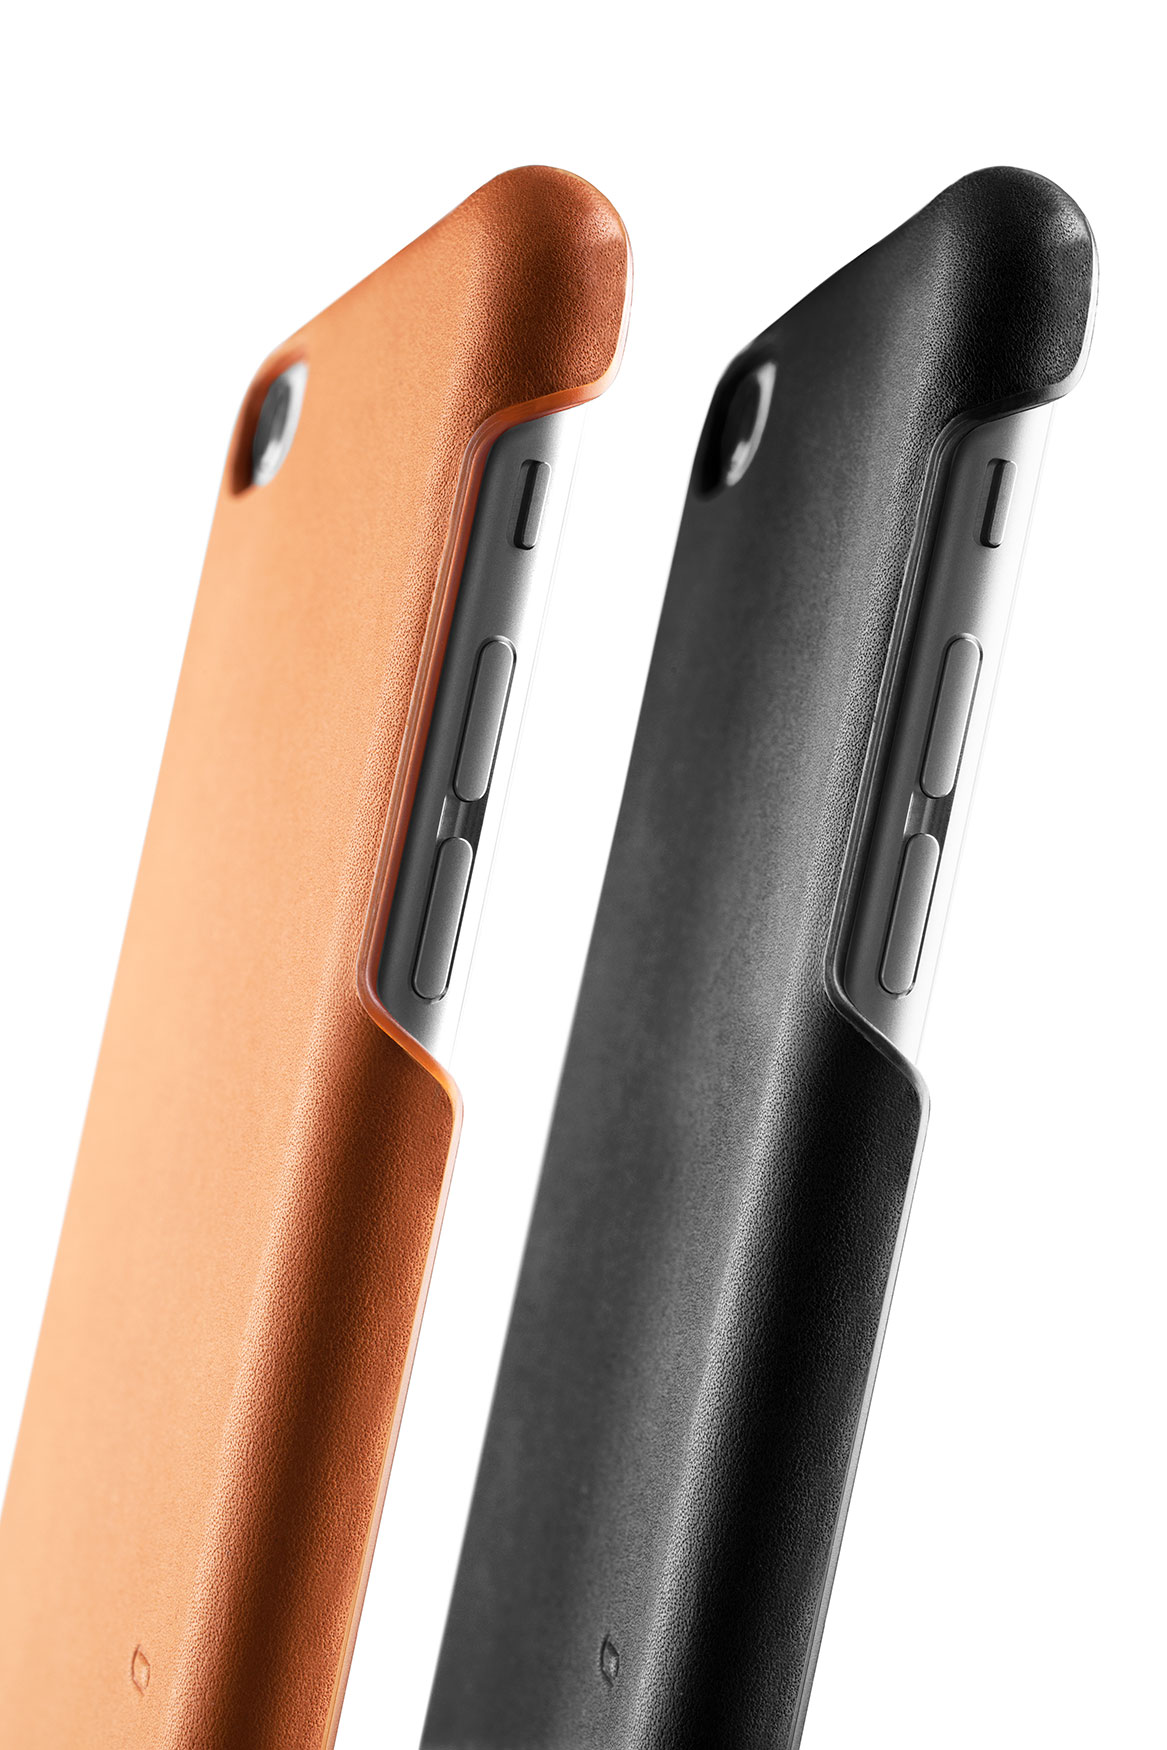 super popular e4a2d feb4d Mujjo Adds a New Range of Leather Cases for iPhone 6s and 6s Plus ...